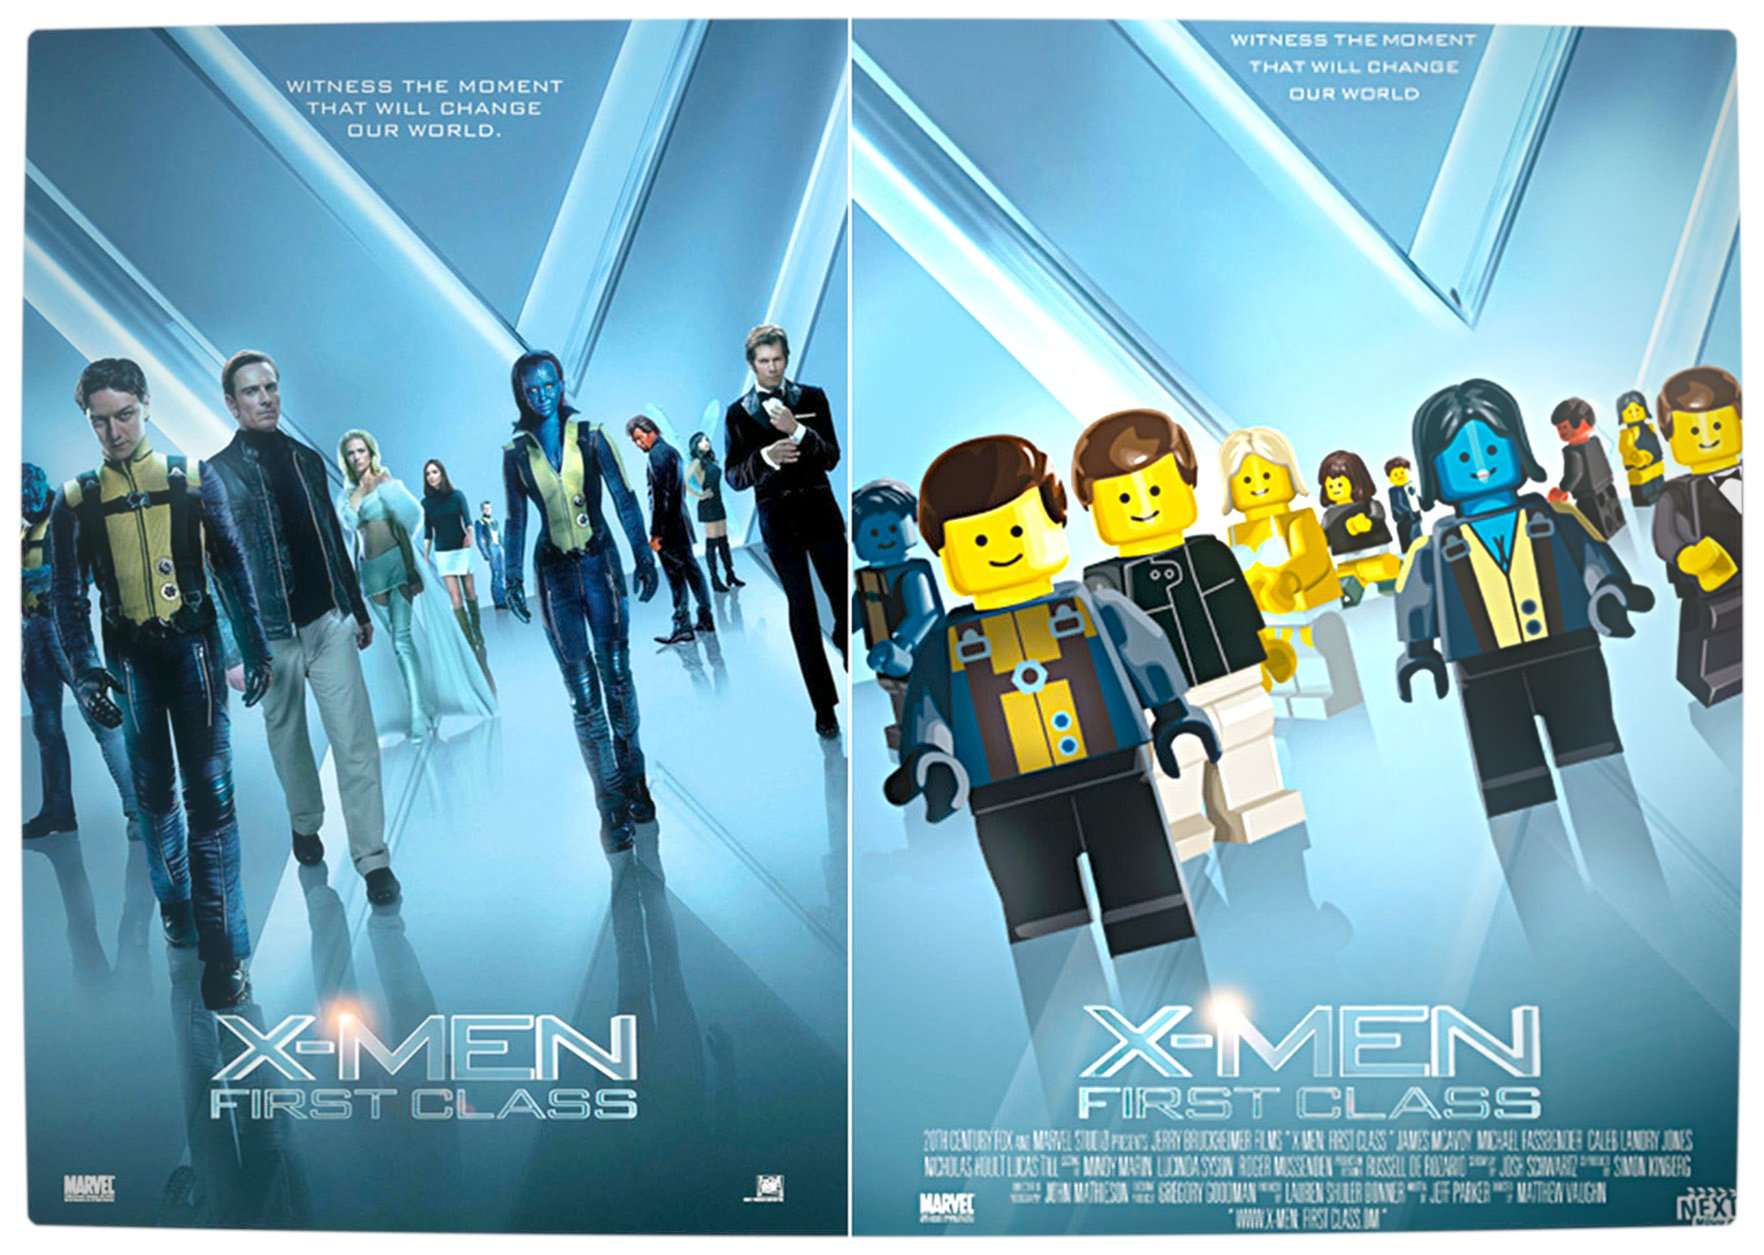 Vamers-Fandom-Movie-Lego-Posters-X-Men-First-Class.jpg X Men First Class Characters Names